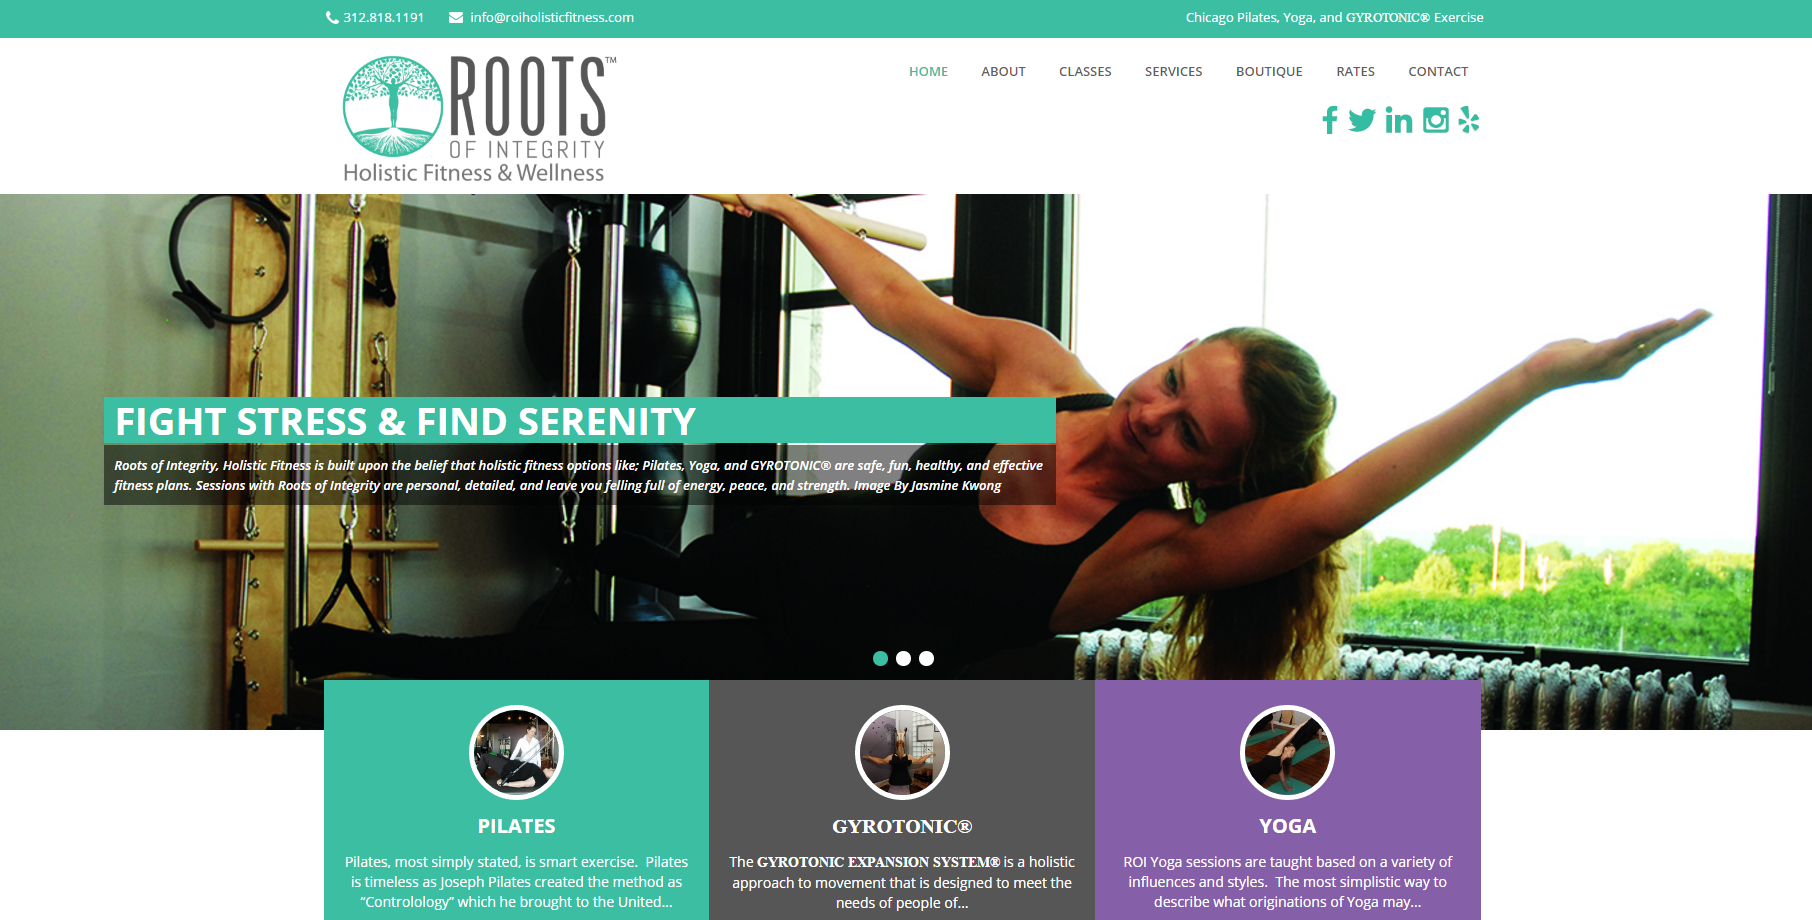 Roots of Integrity Rebrand/Redsign